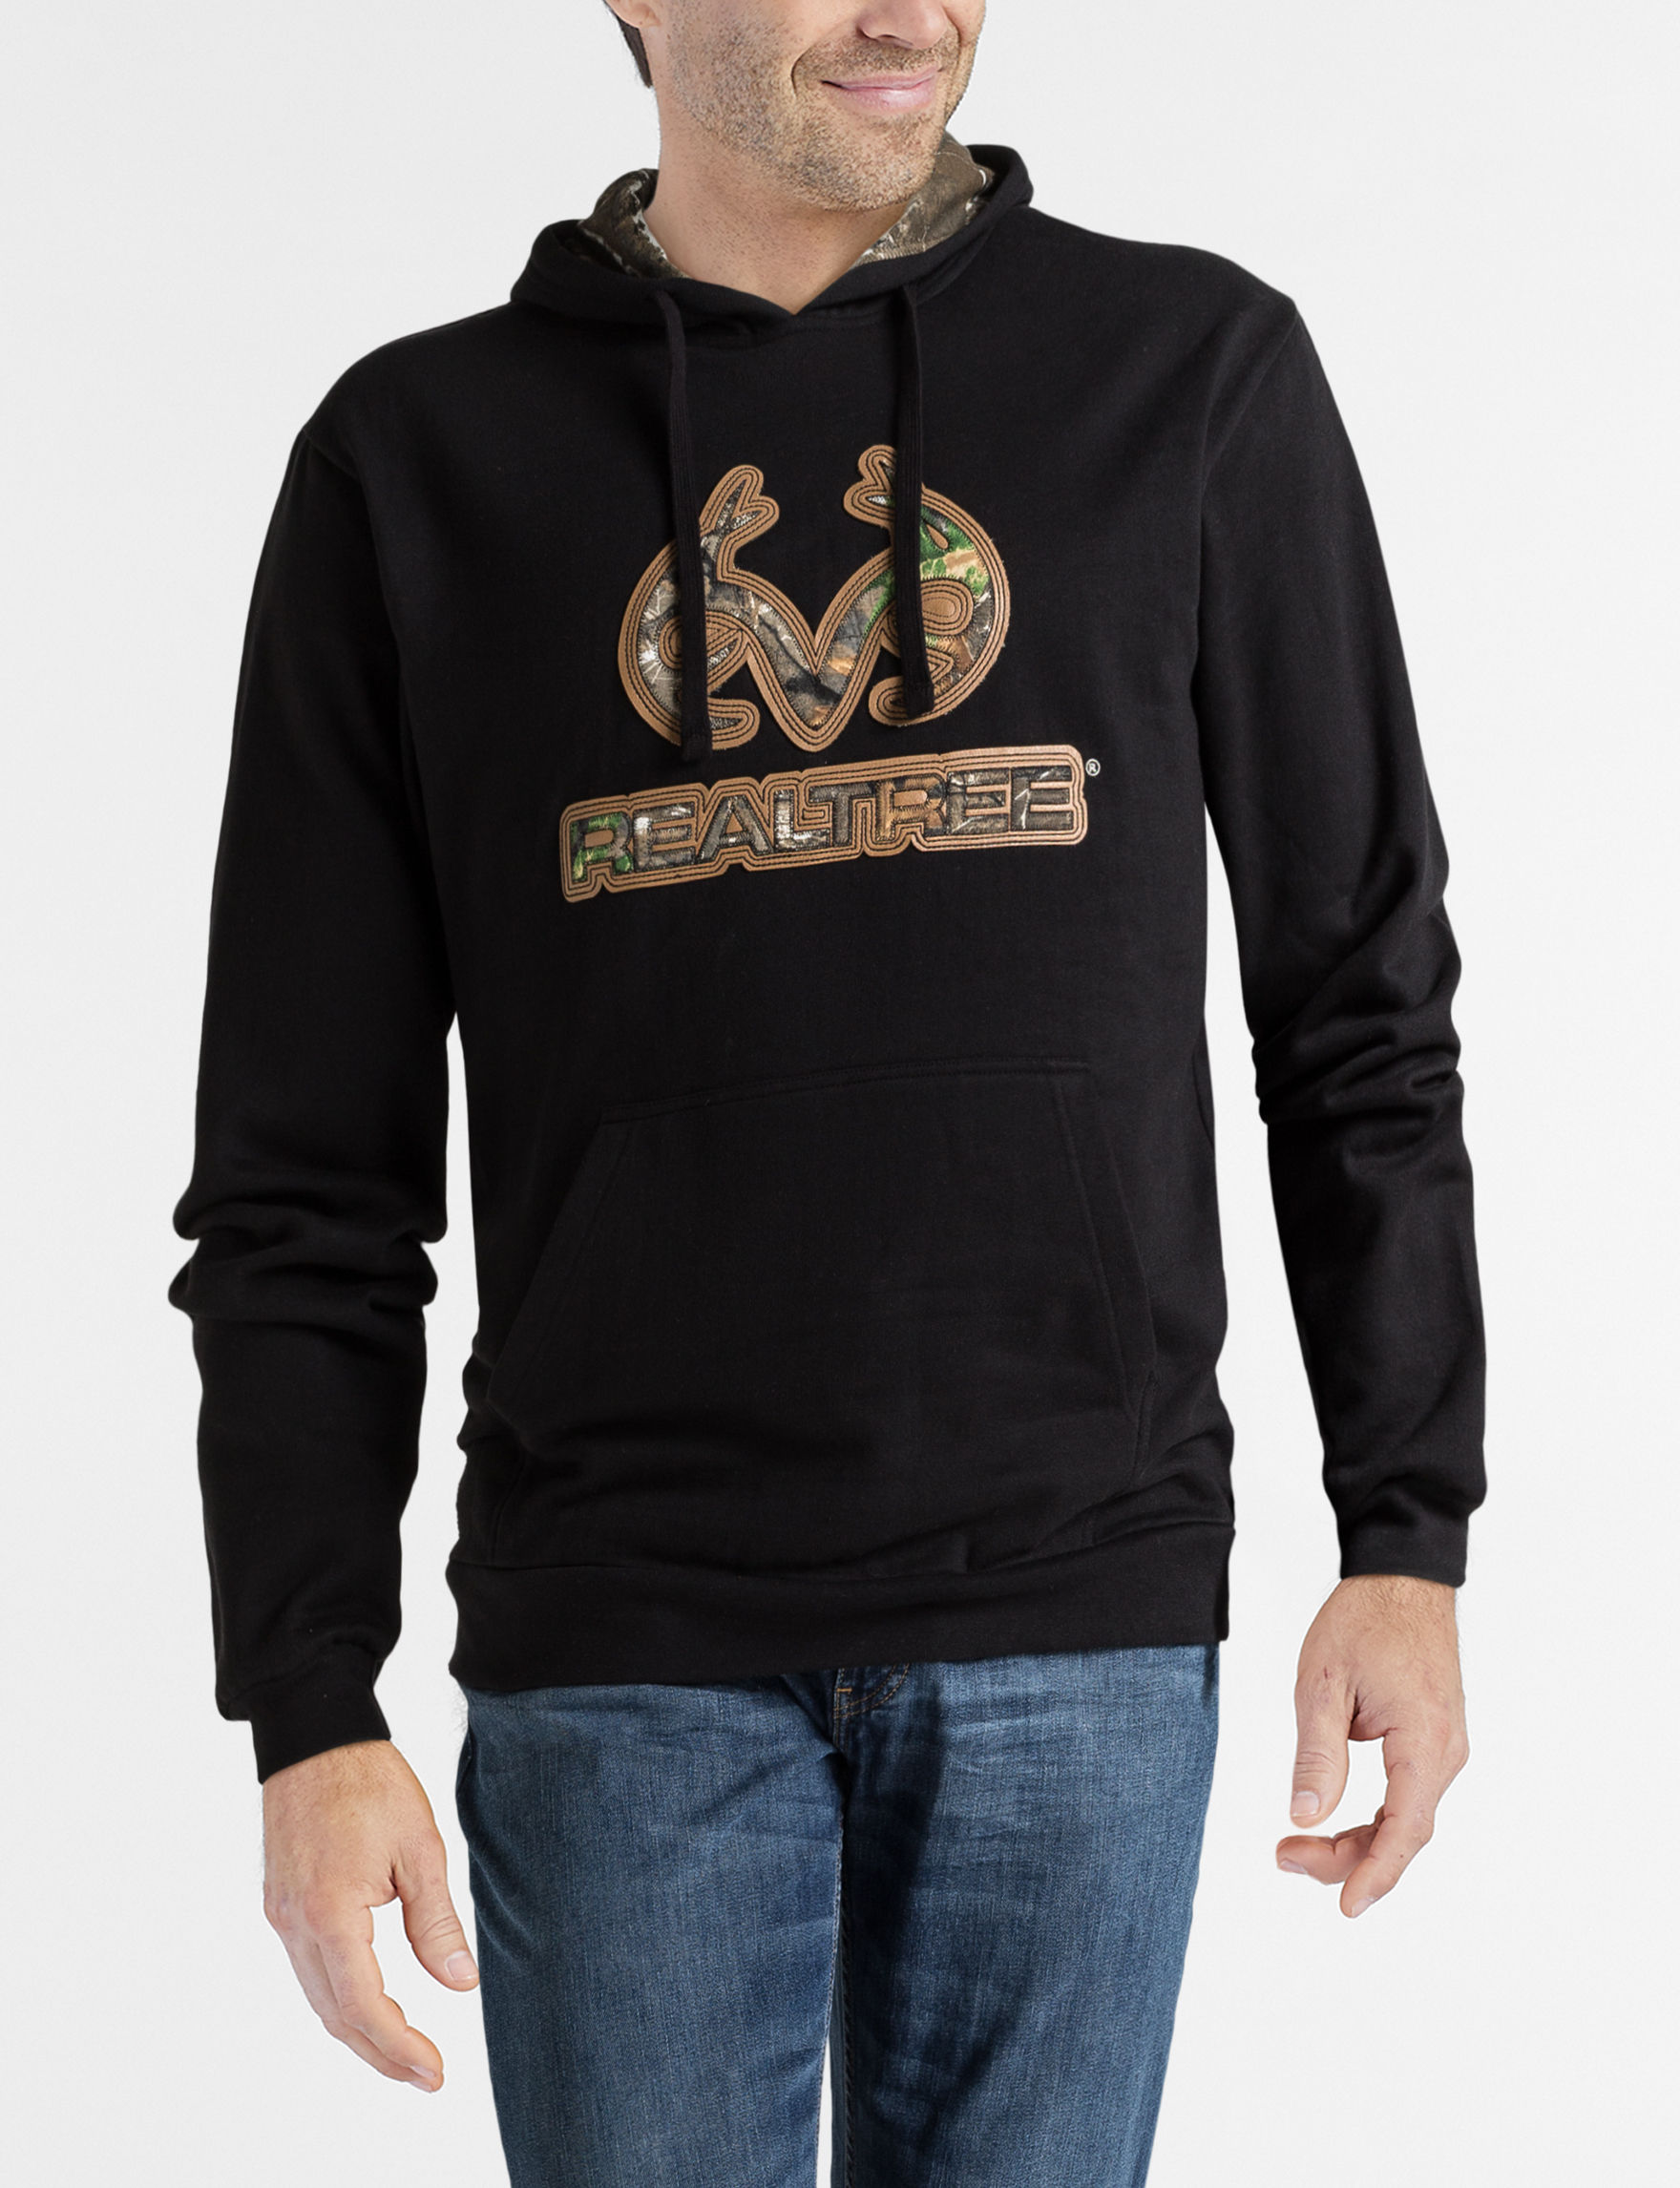 Realtree Black Pull-overs